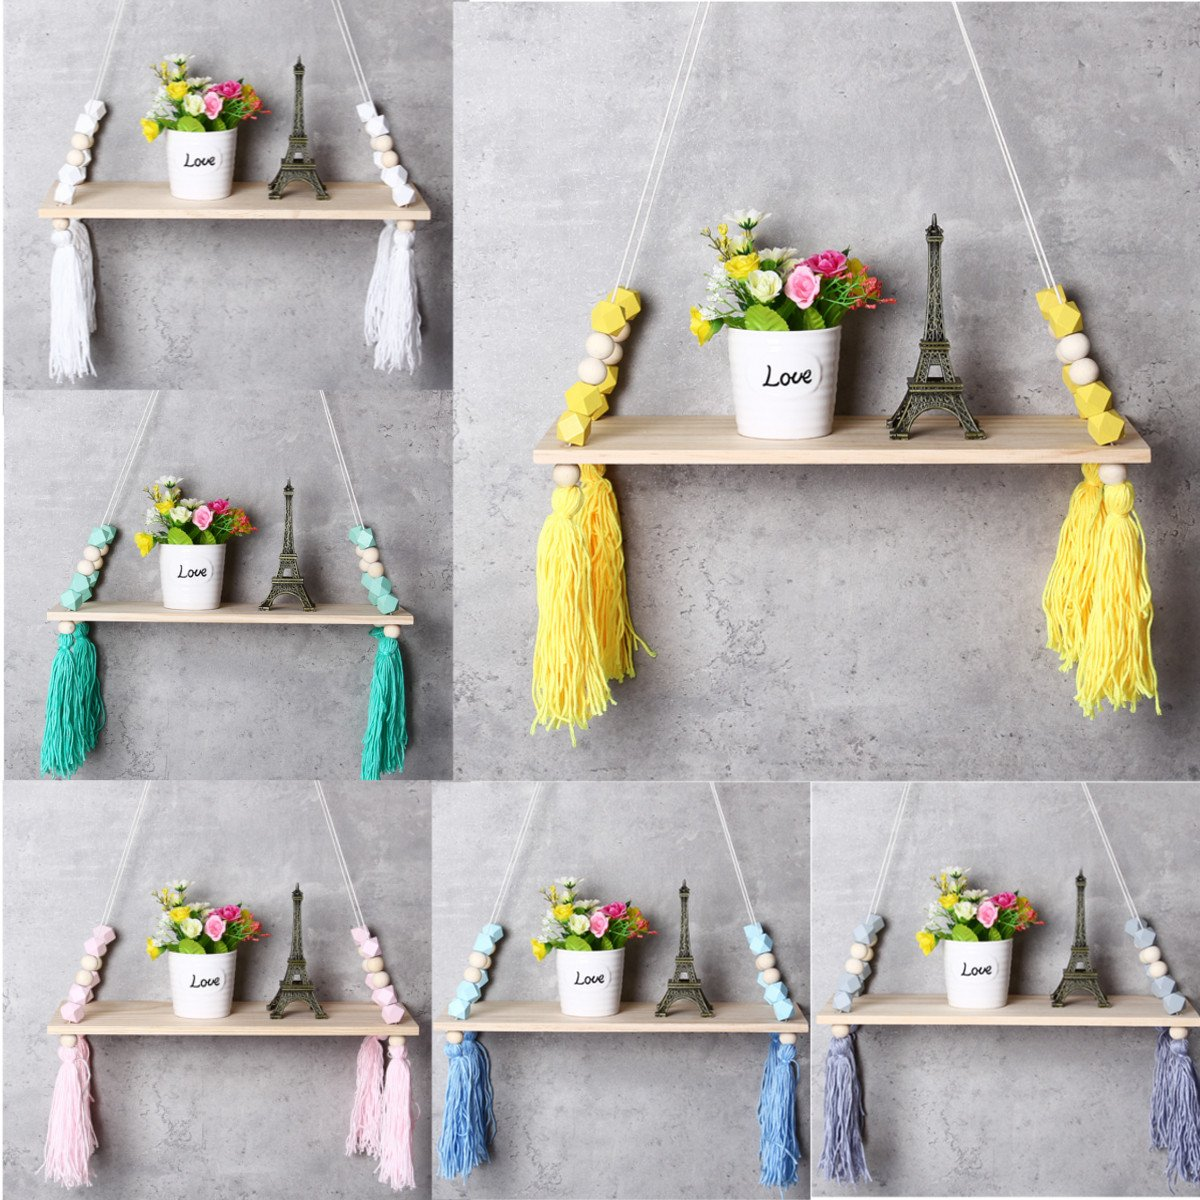 Baby Boy Bedroom Ideas Best Of Details About Wall Hanging Swing Shelf Shelves Baby Kids Room Storage Holder Wood Rope Decor